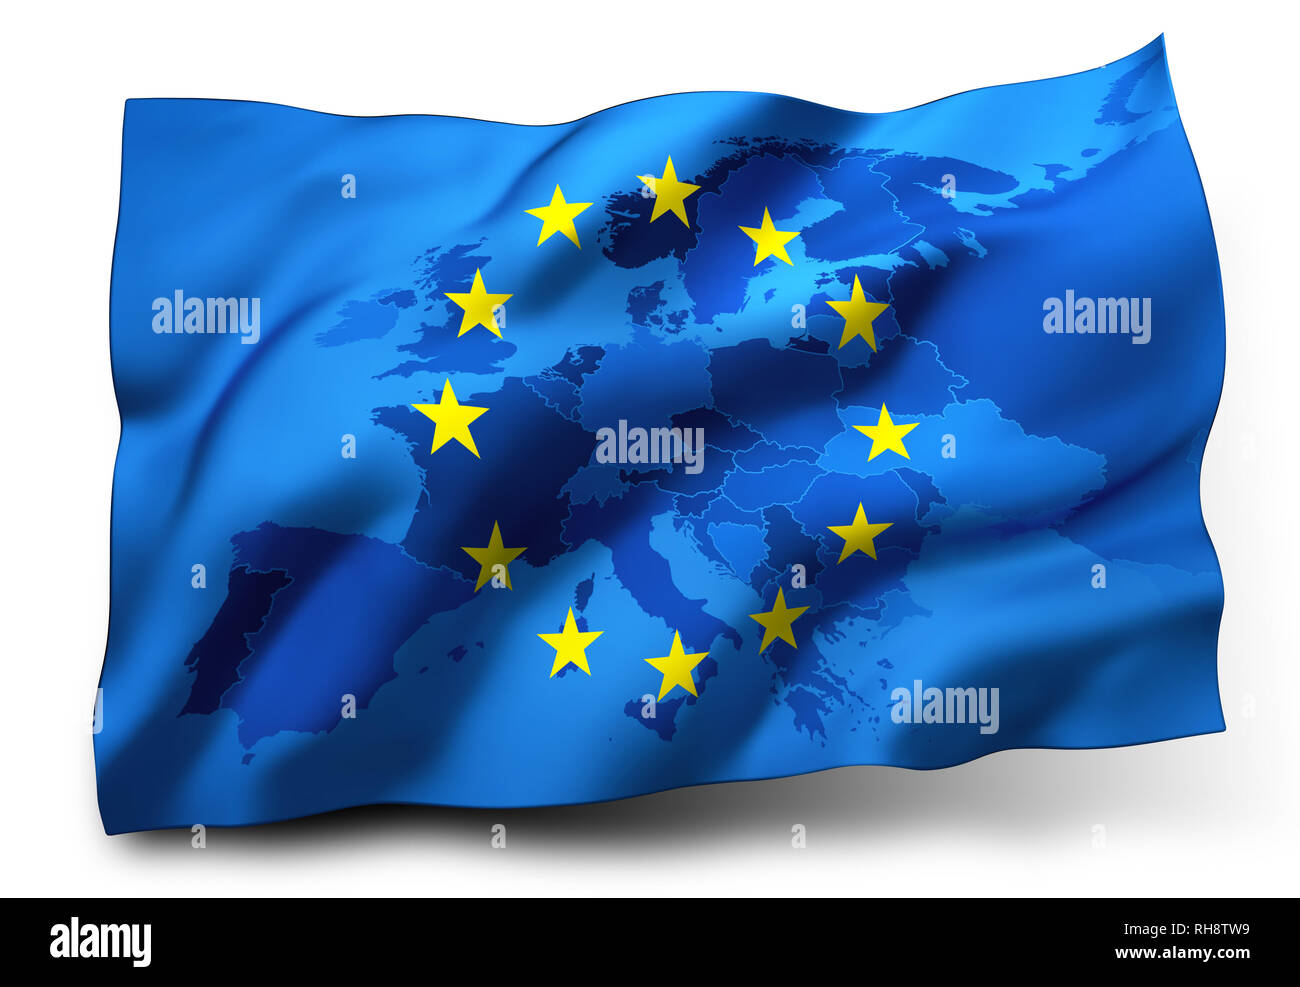 Flag of European Union blowing in the wind, Europe map inside. 3D illustration - Stock Image